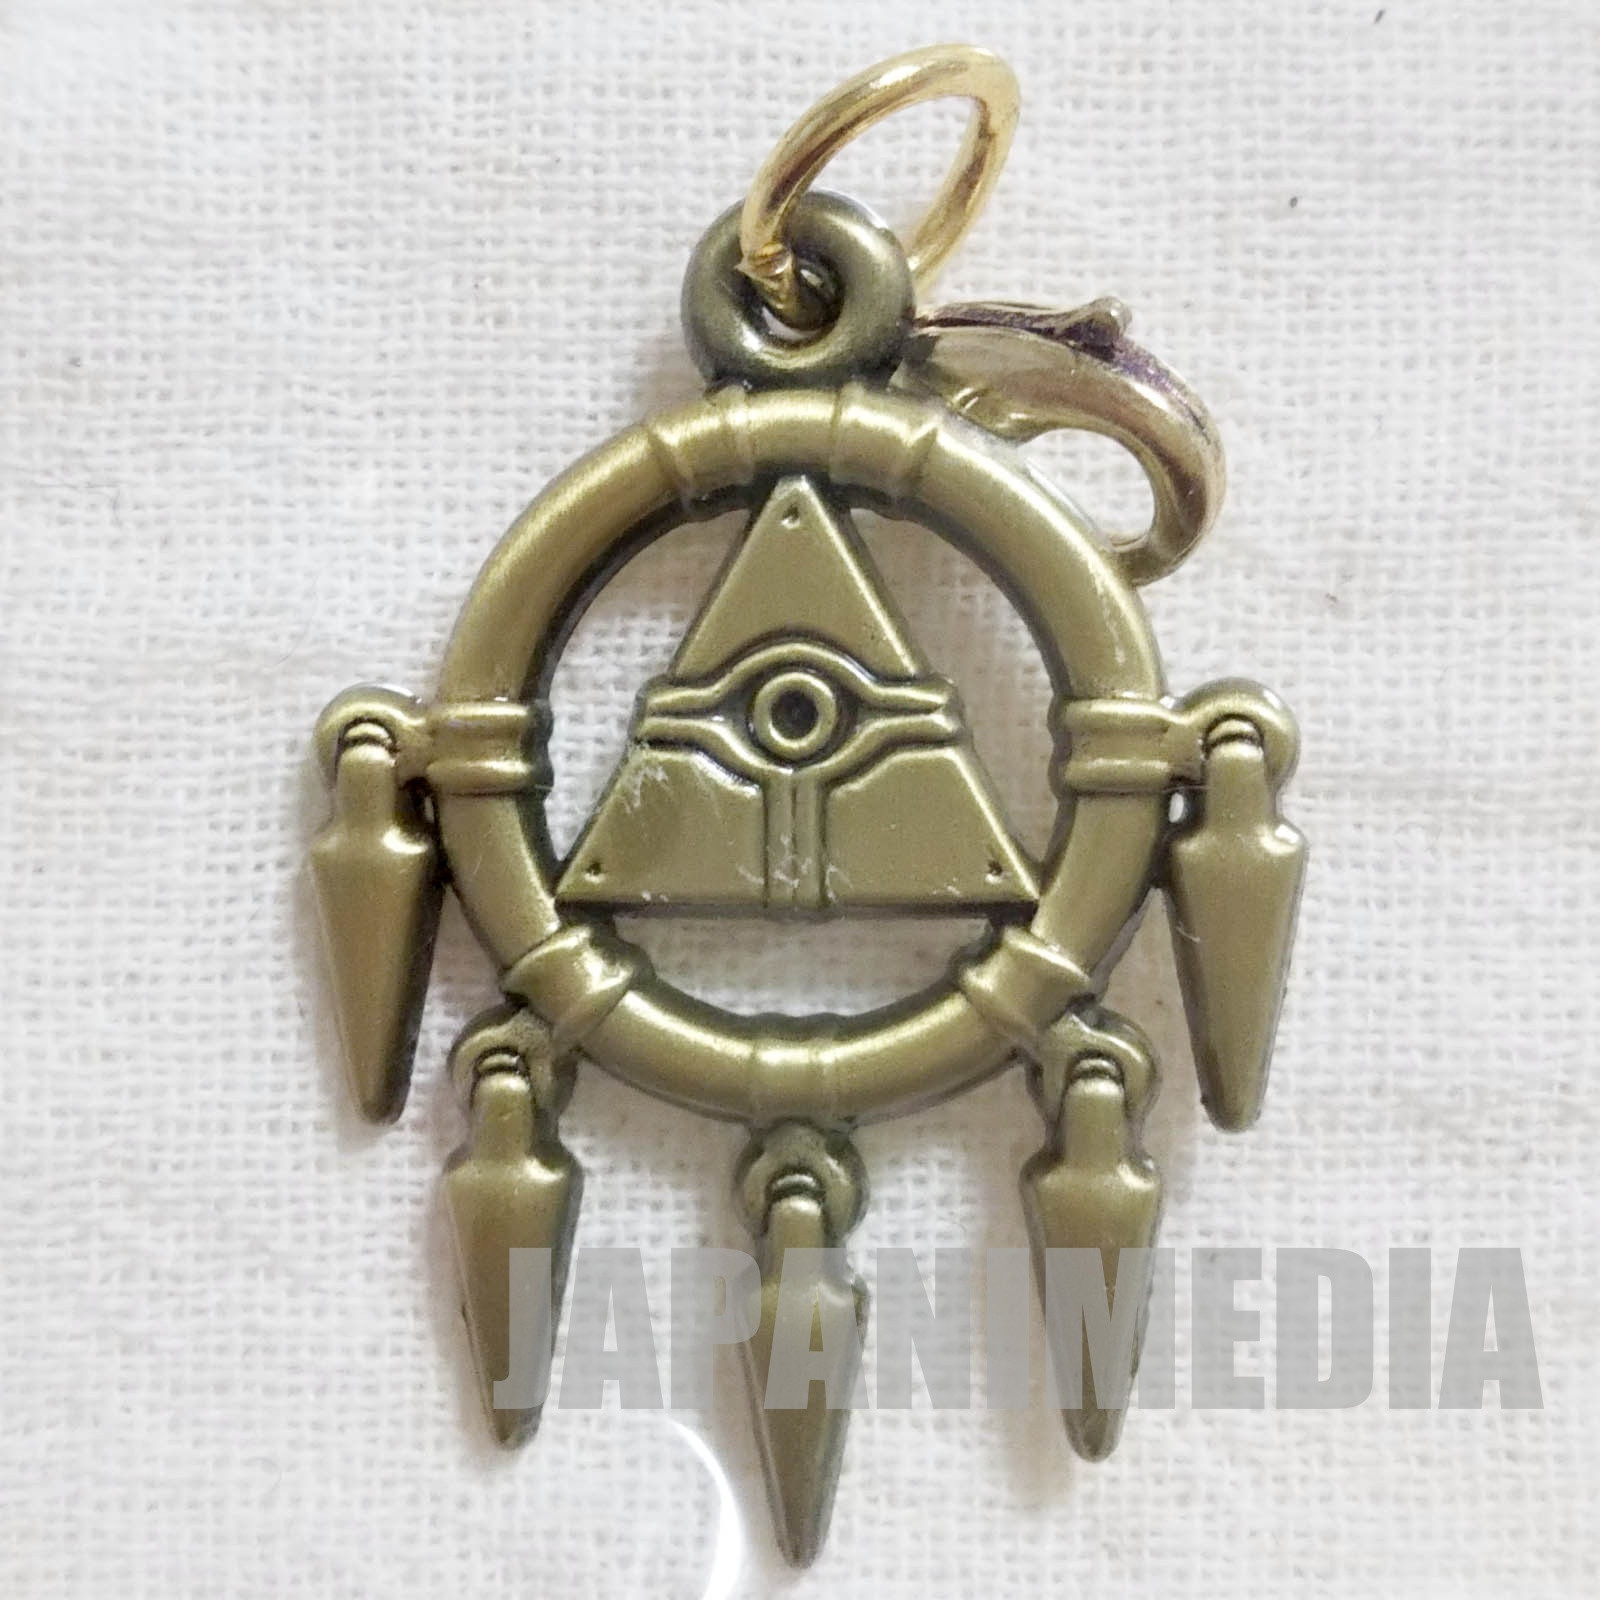 Yu-Gi-Oh! Millenium Ring 20th Millenium item Metal charm collection [4] JAPAN ANIME